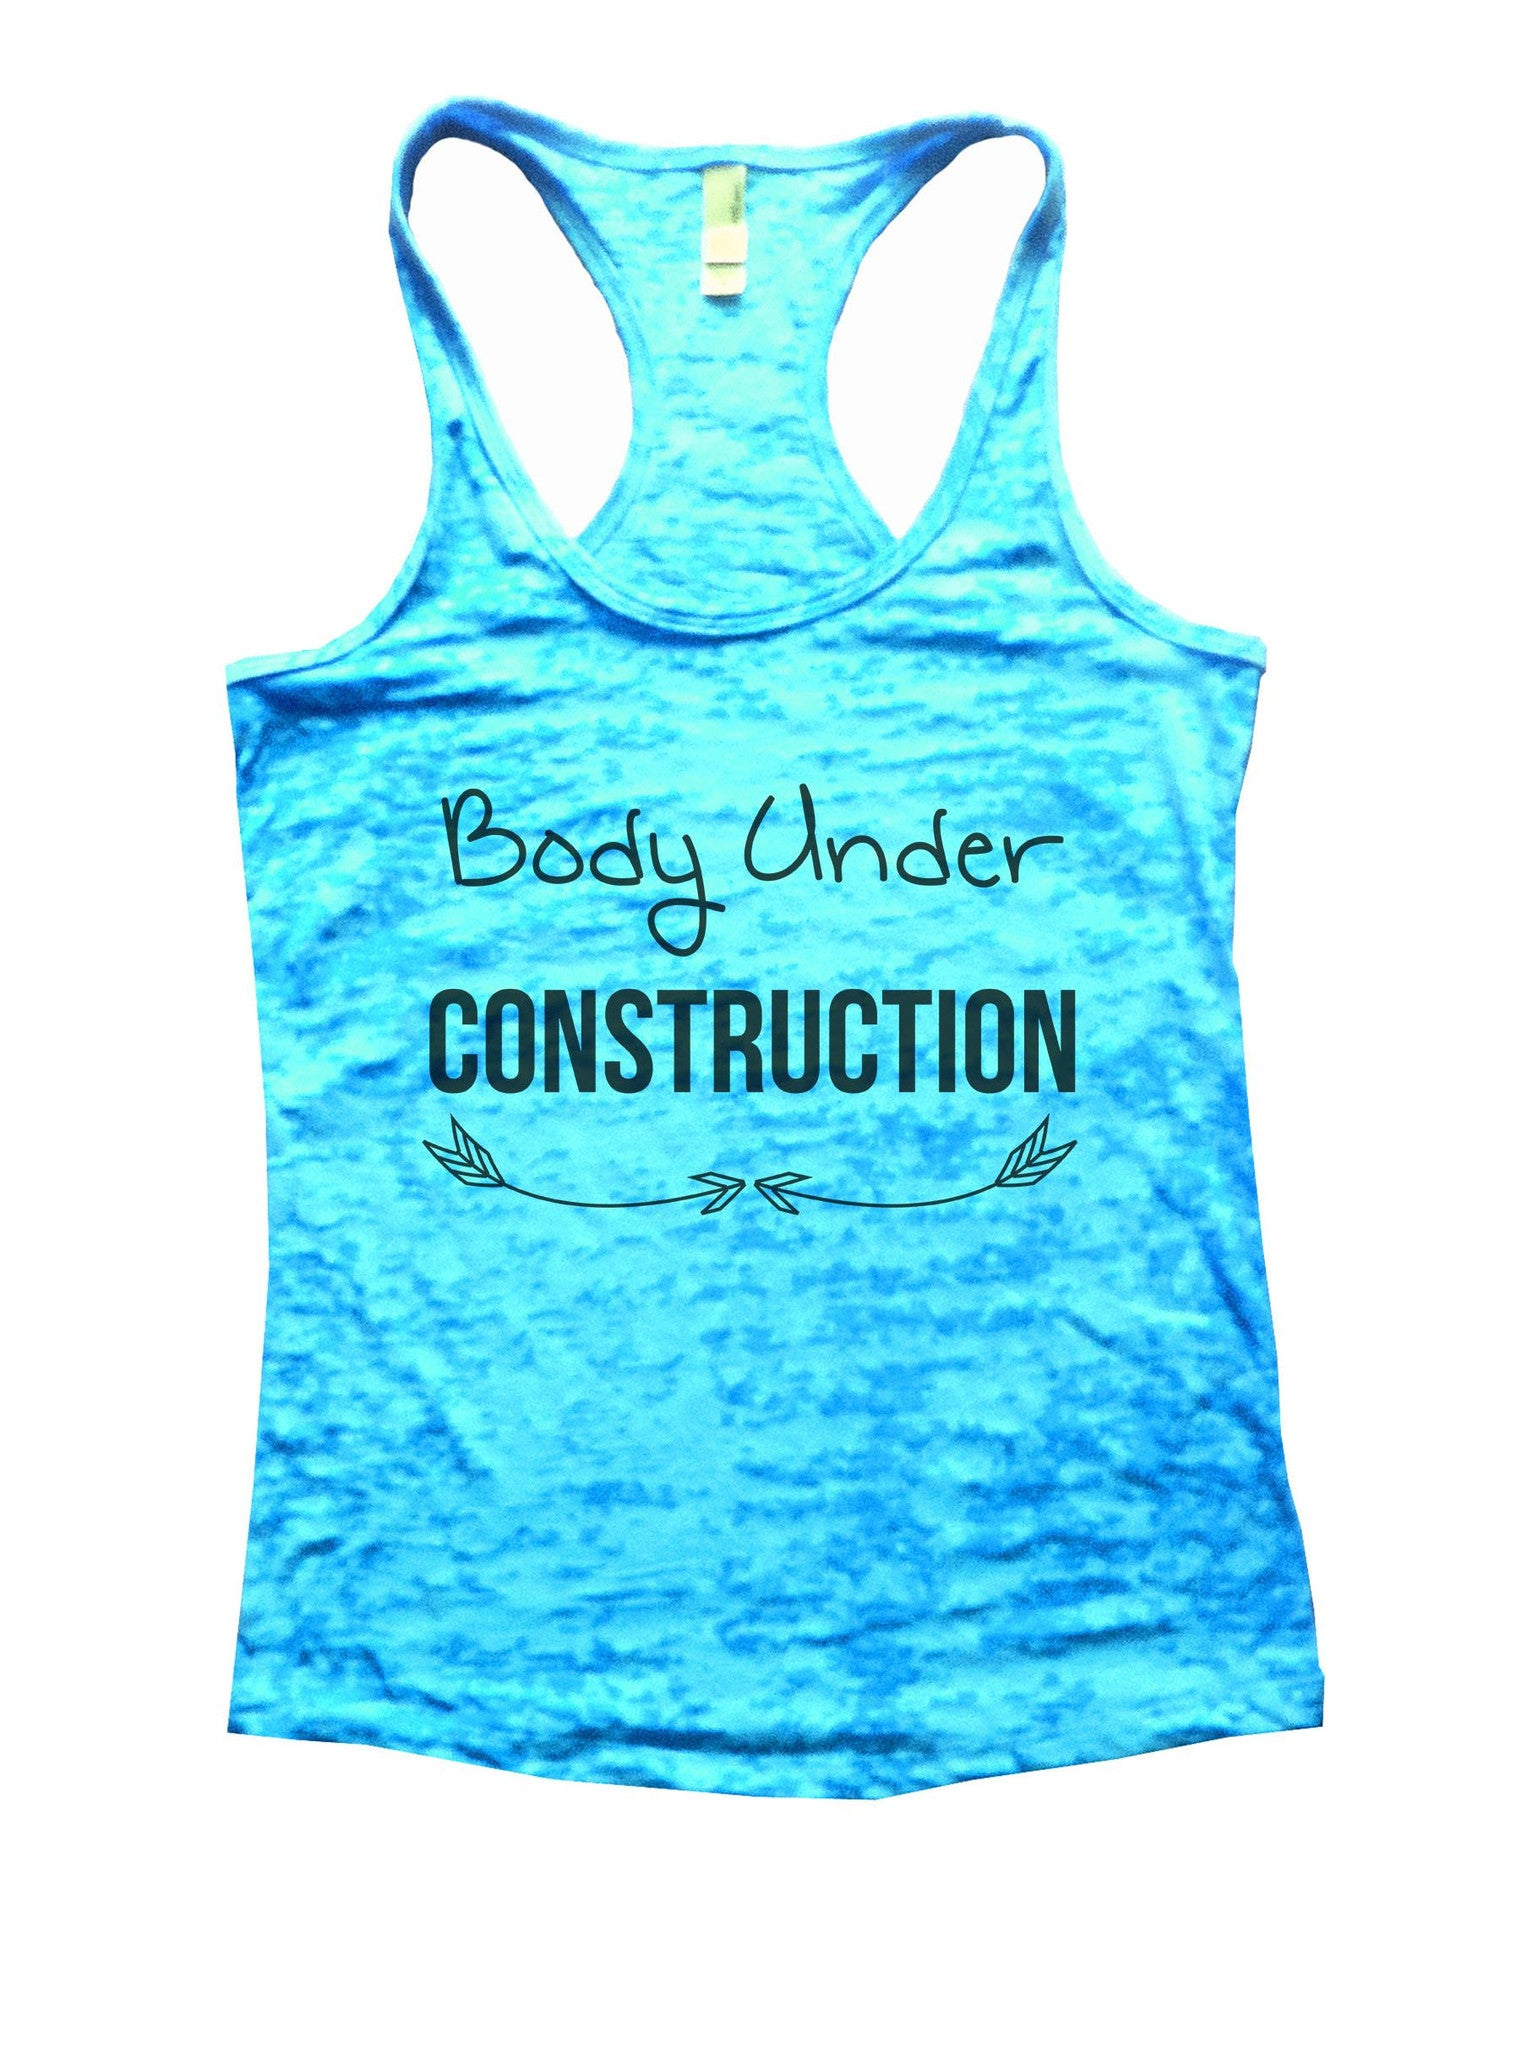 Body Under Construction Burnout Tank Top By BurnoutTankTops.com - 877 - Funny Shirts Tank Tops Burnouts and Triblends  - 4